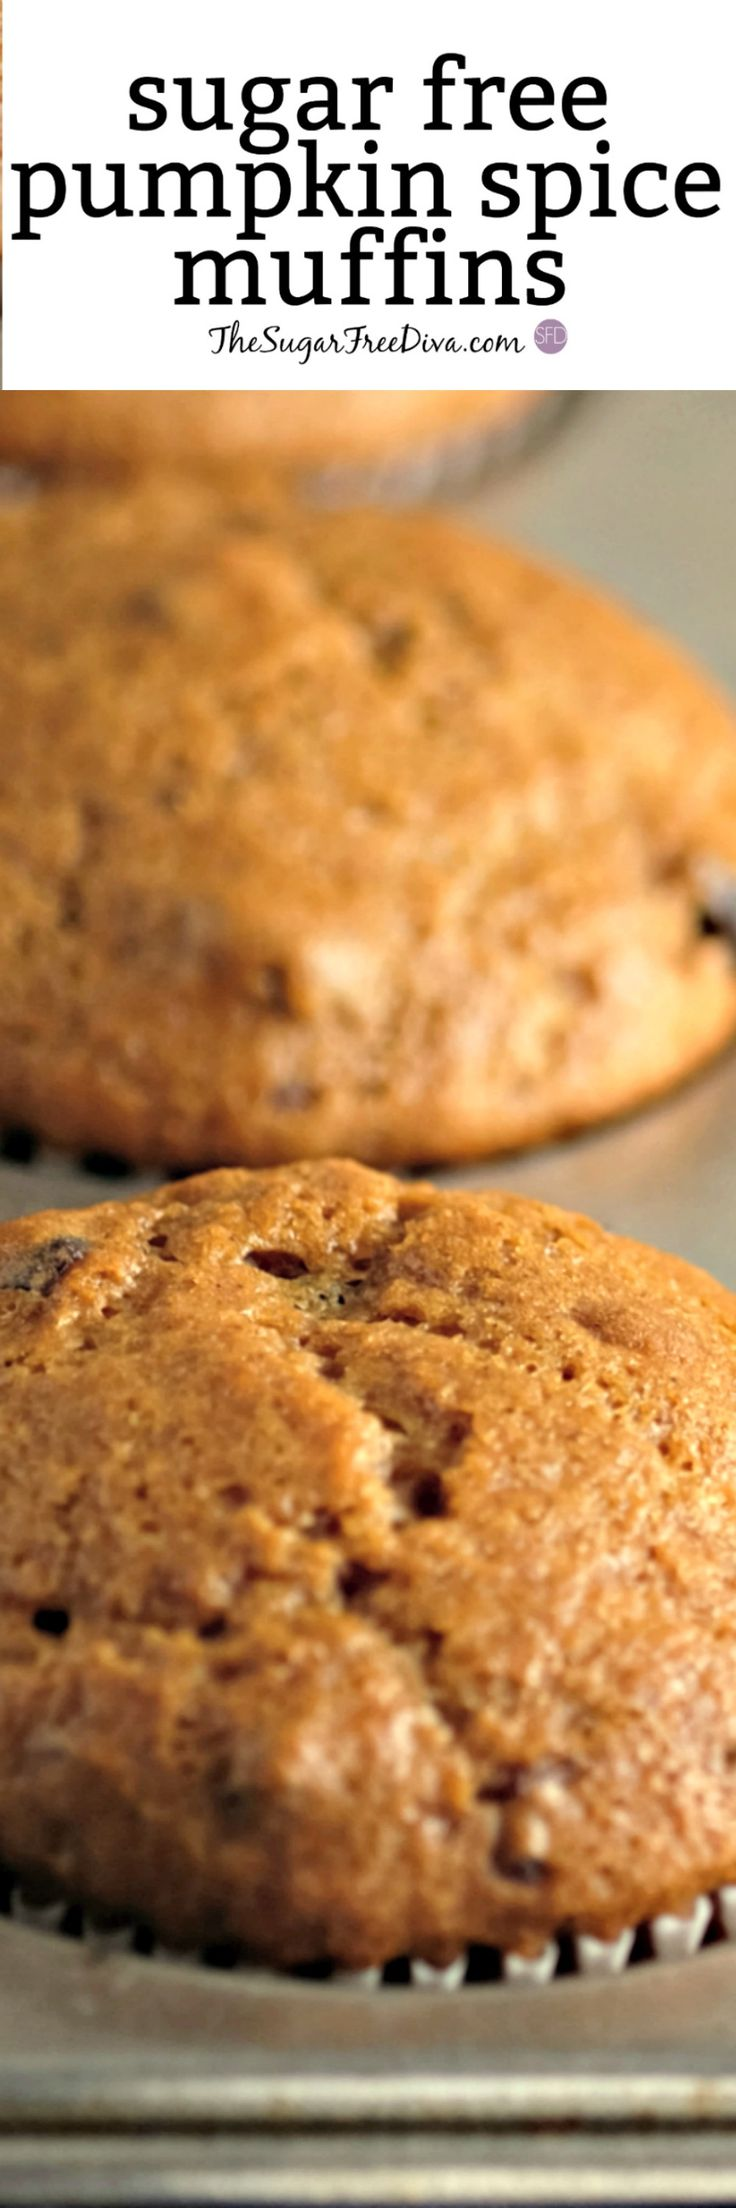 Enjoy that PUMPKIN SPICE MUFFIN without all of the sugar added to it with this easy recipe that is perfect for a snack, breakfast or just about anything else. Perfect for fall baking and Halloween Too!